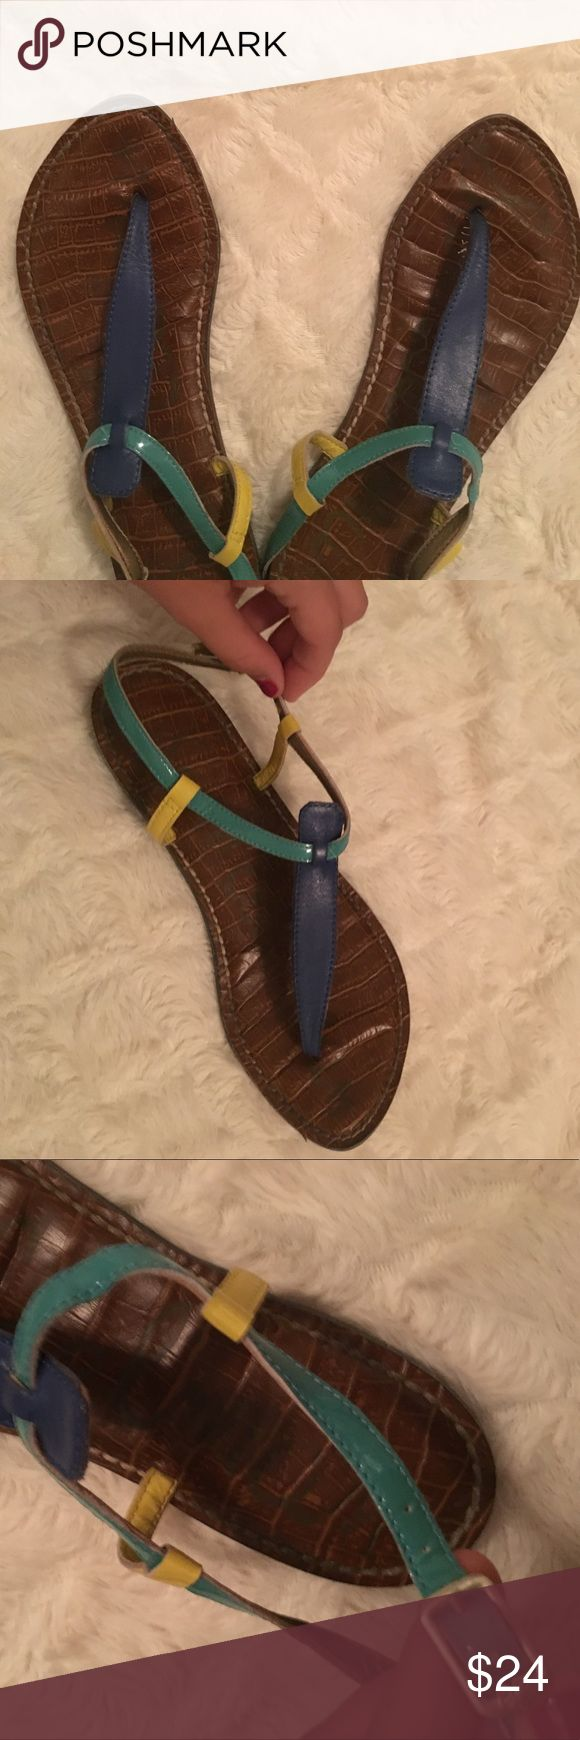 Sam Edelman Gigi Thong Sandals Sam Edelman Gigi Thong Sandals. Has leather & patent material with buckle closure. These are great to be casual or to dress up. Good condition! Size 7. Sam Edelman Shoes Sandals